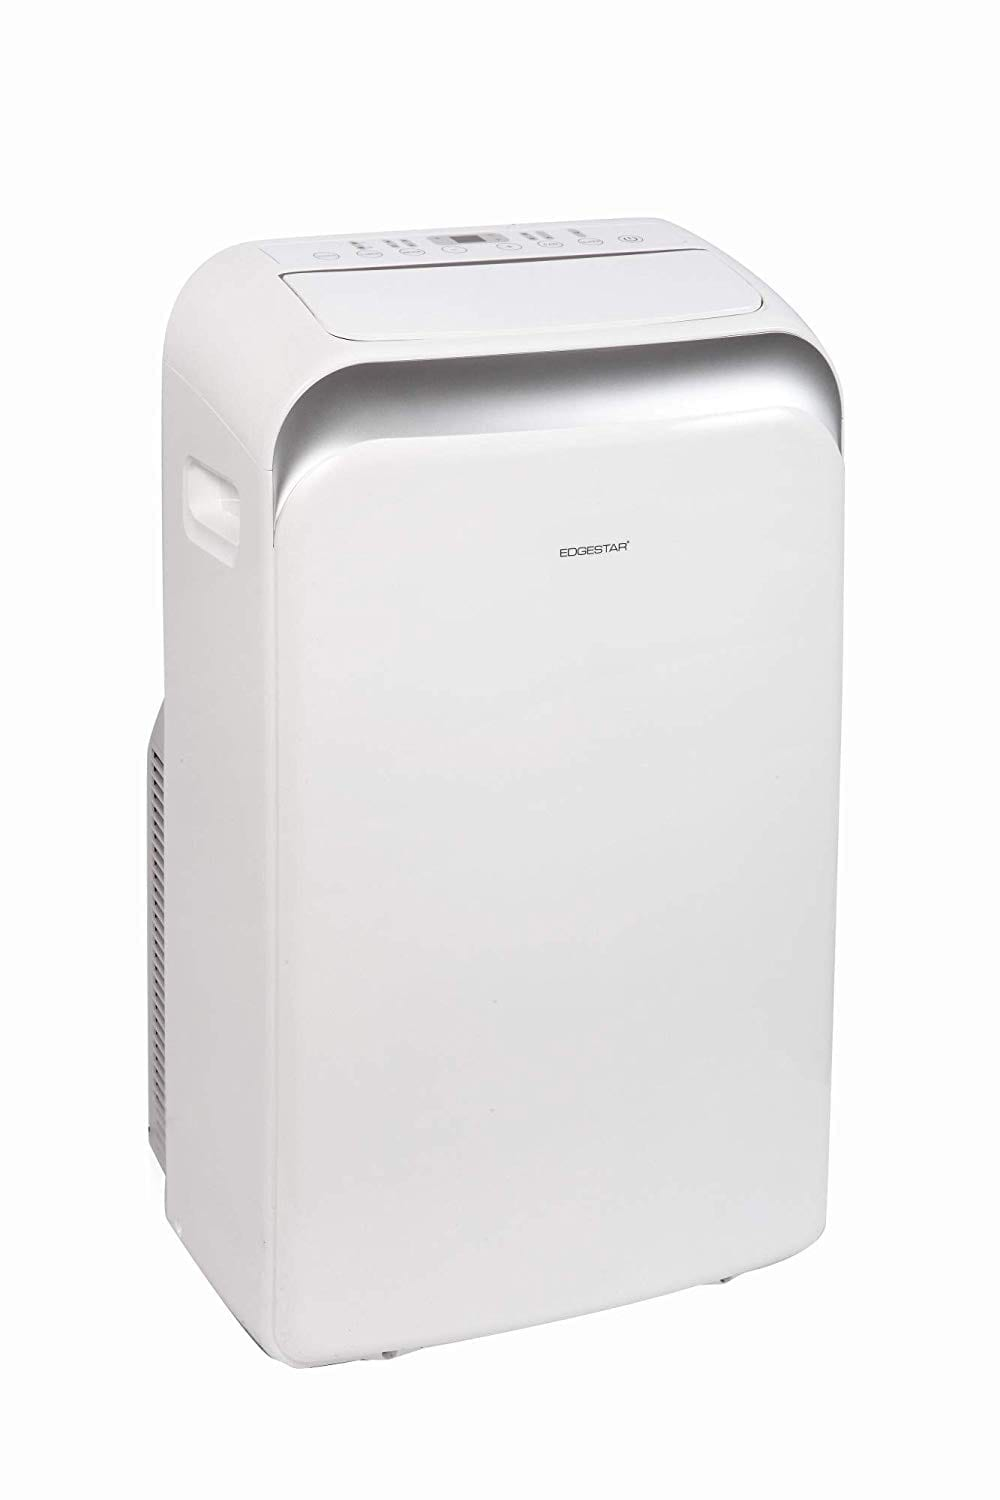 EdgeStar AP14003W Portable Air Conditioner